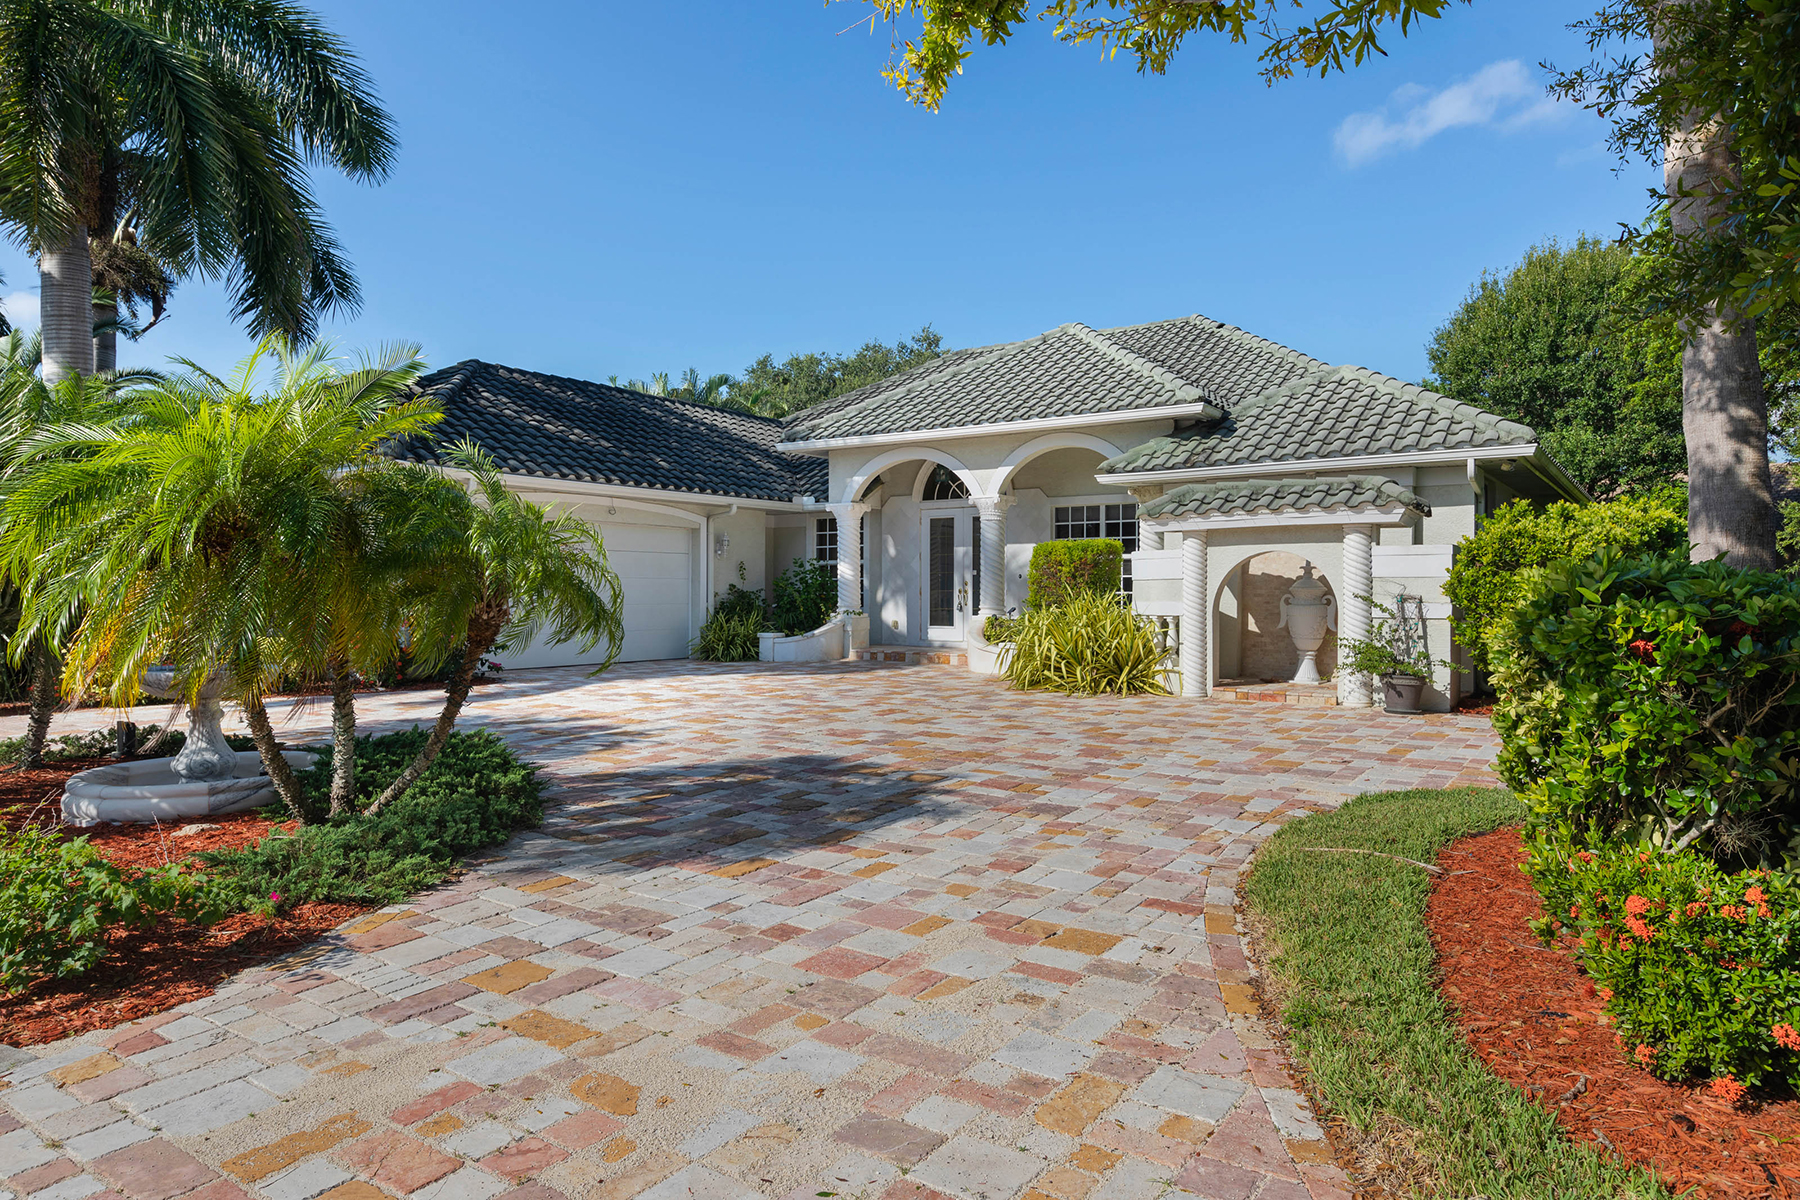 Single Family Homes for Sale at CARILLON WOODS 22 Timberland Cir S Fort Myers, Florida 33919 United States